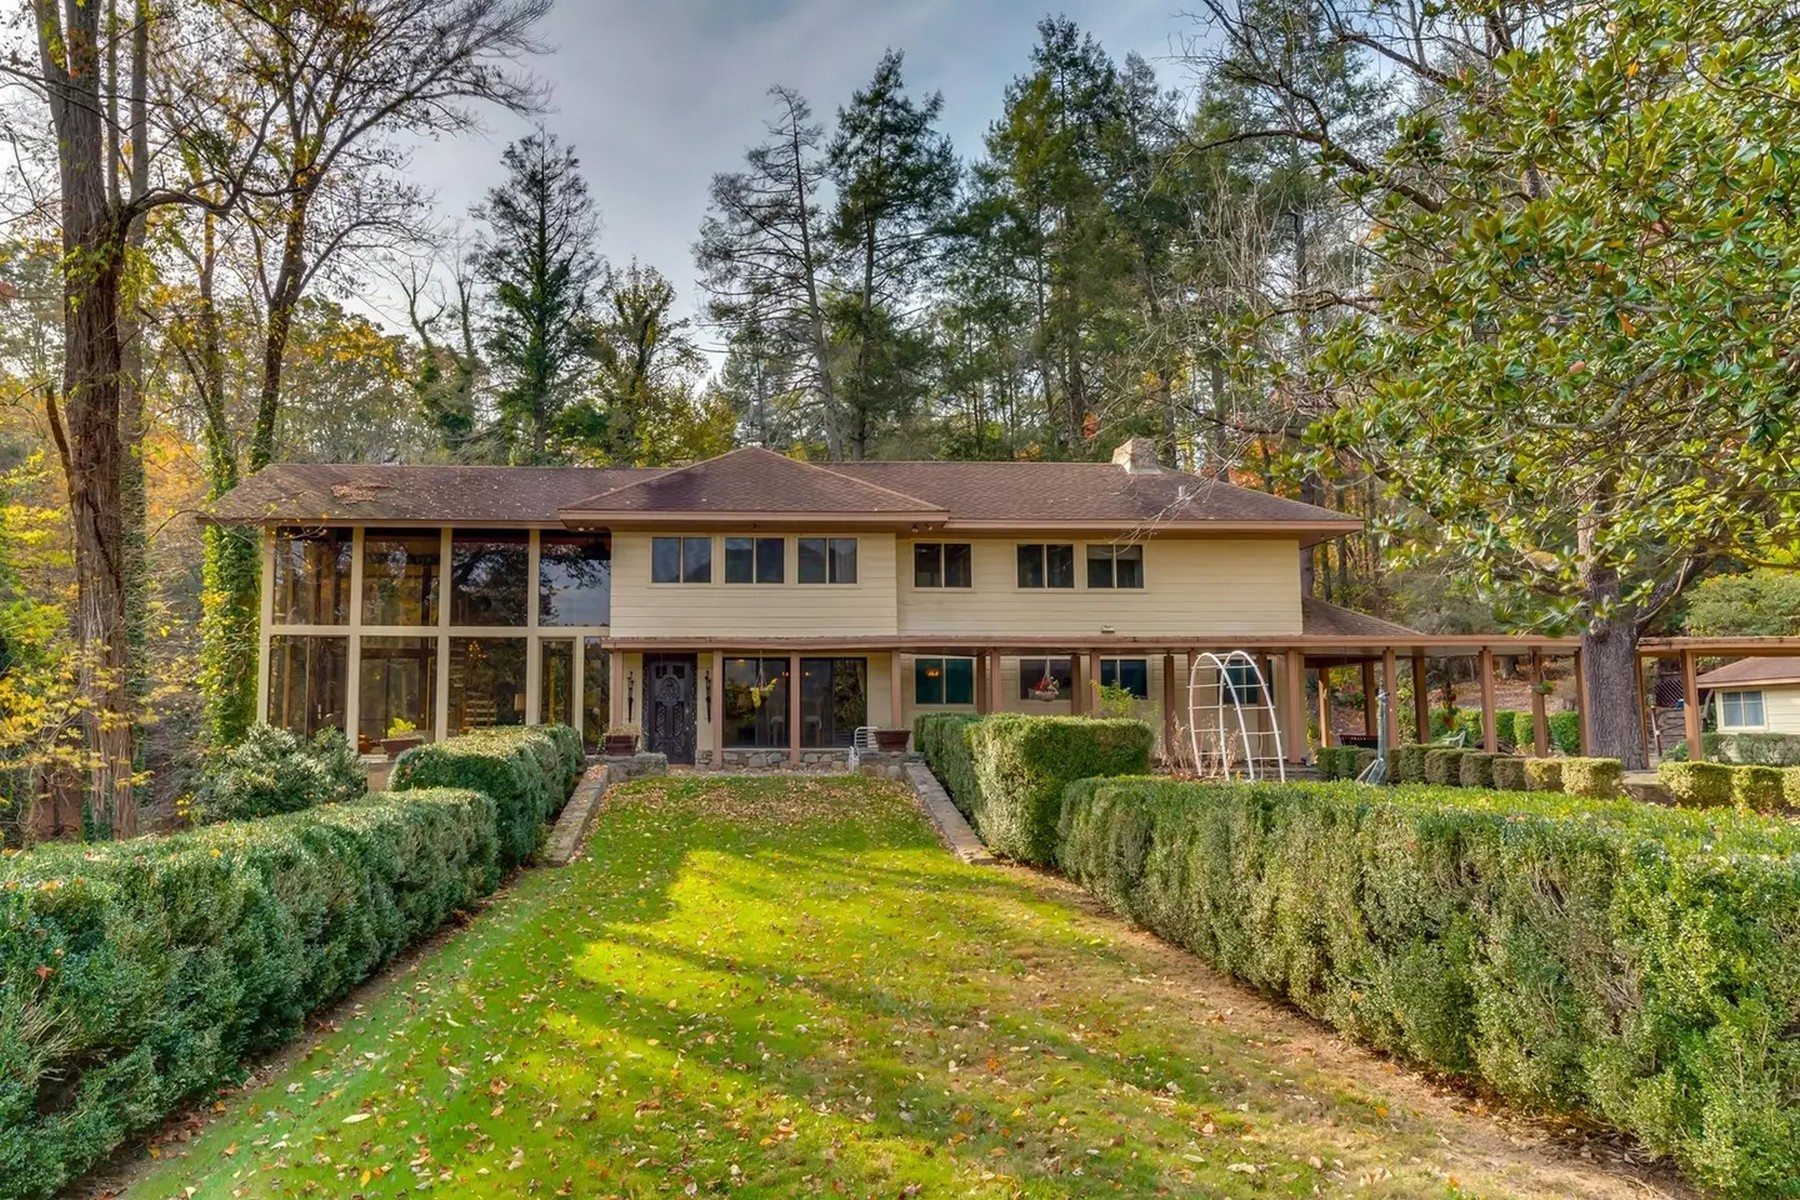 Single Family Homes for Active at 400 Kings Drive, Lake Lure, NC 28746 400 Kings Drive Lake Lure, North Carolina 28746 United States